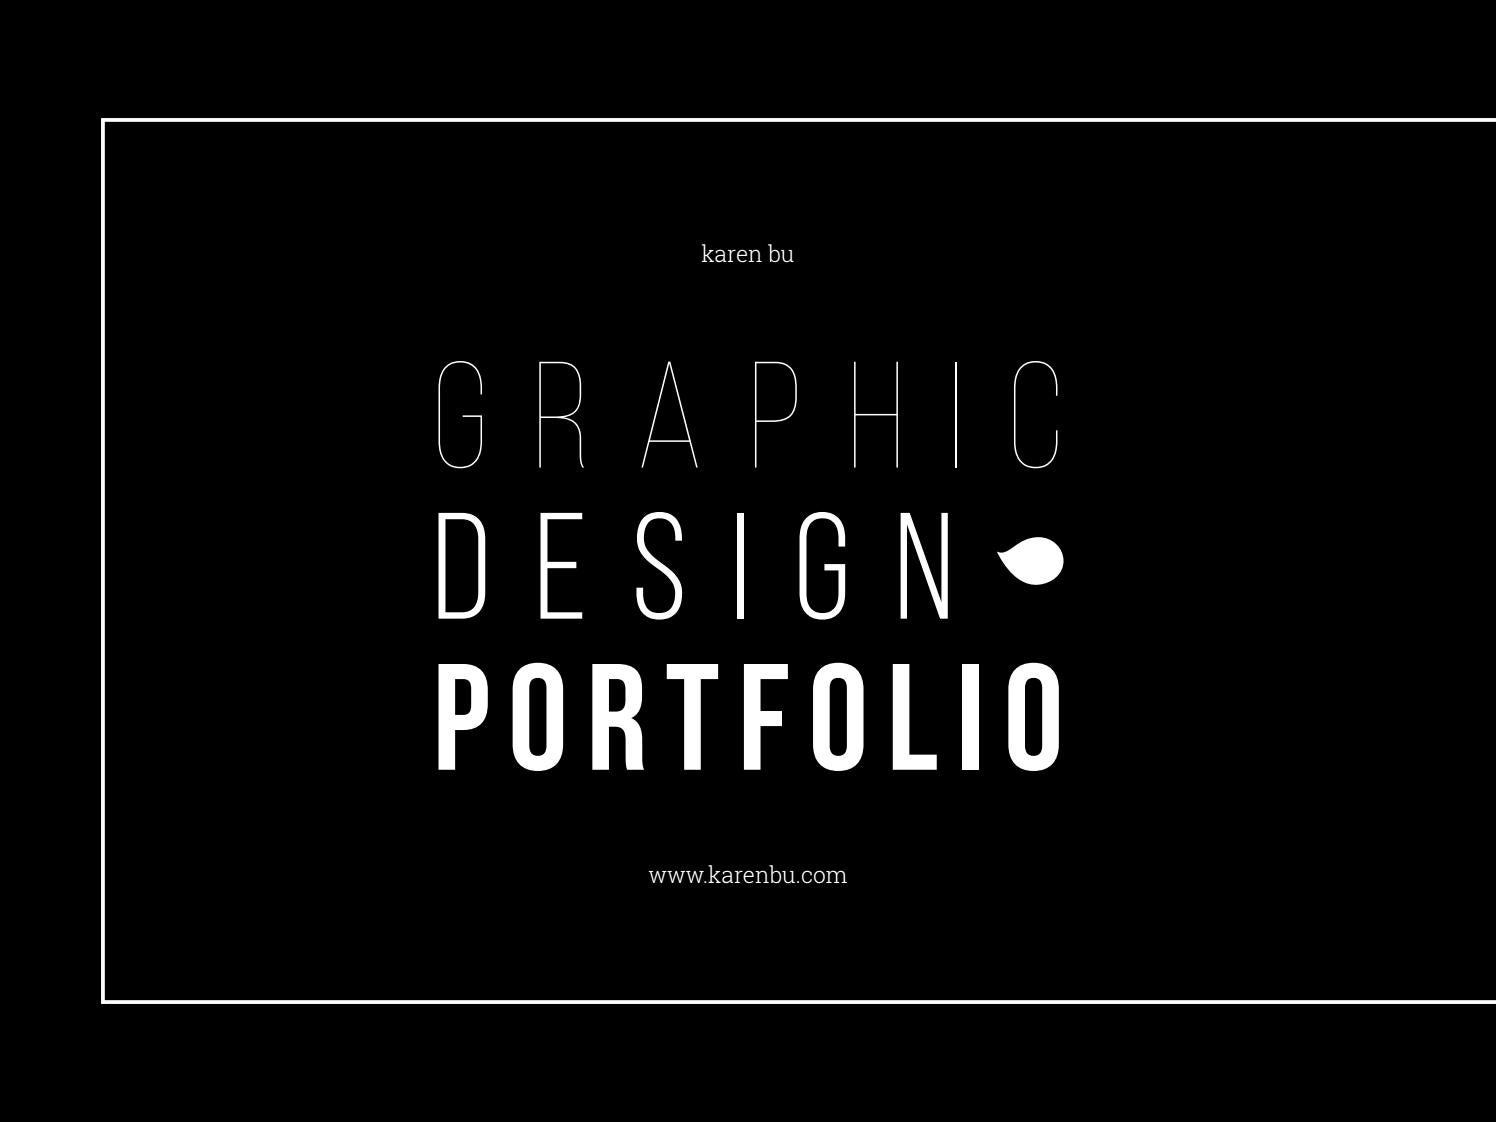 Graphic Design Portfolio August 2016 By Karen Bu Issuu